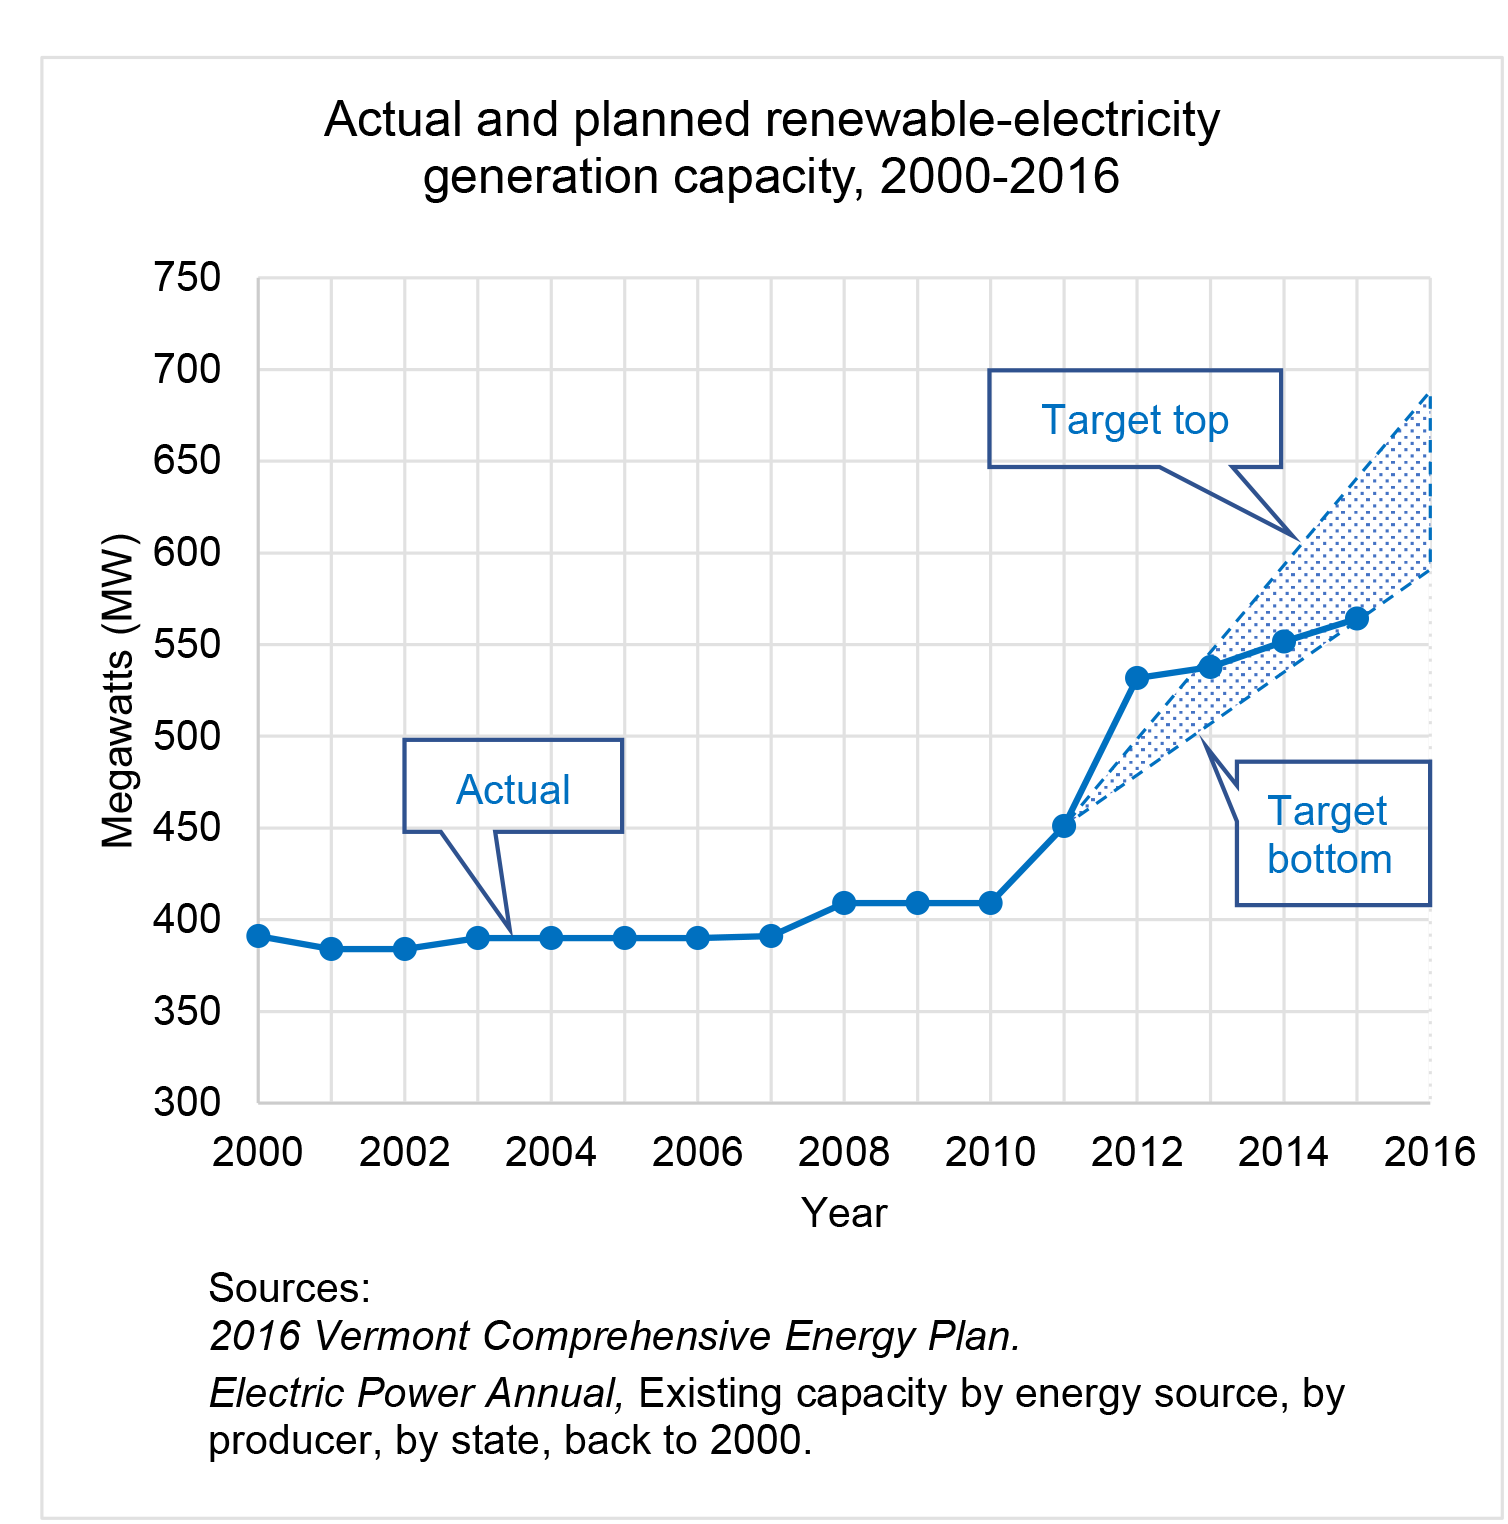 Since 2010, Vermont's renewable-electricity-generation capacity has grown much faster than previously. However, if it maintains the pace from 2012 onward, it will not stay in the target zone to reach Vermont's goal of getting 90% of its energy from renewable sources.